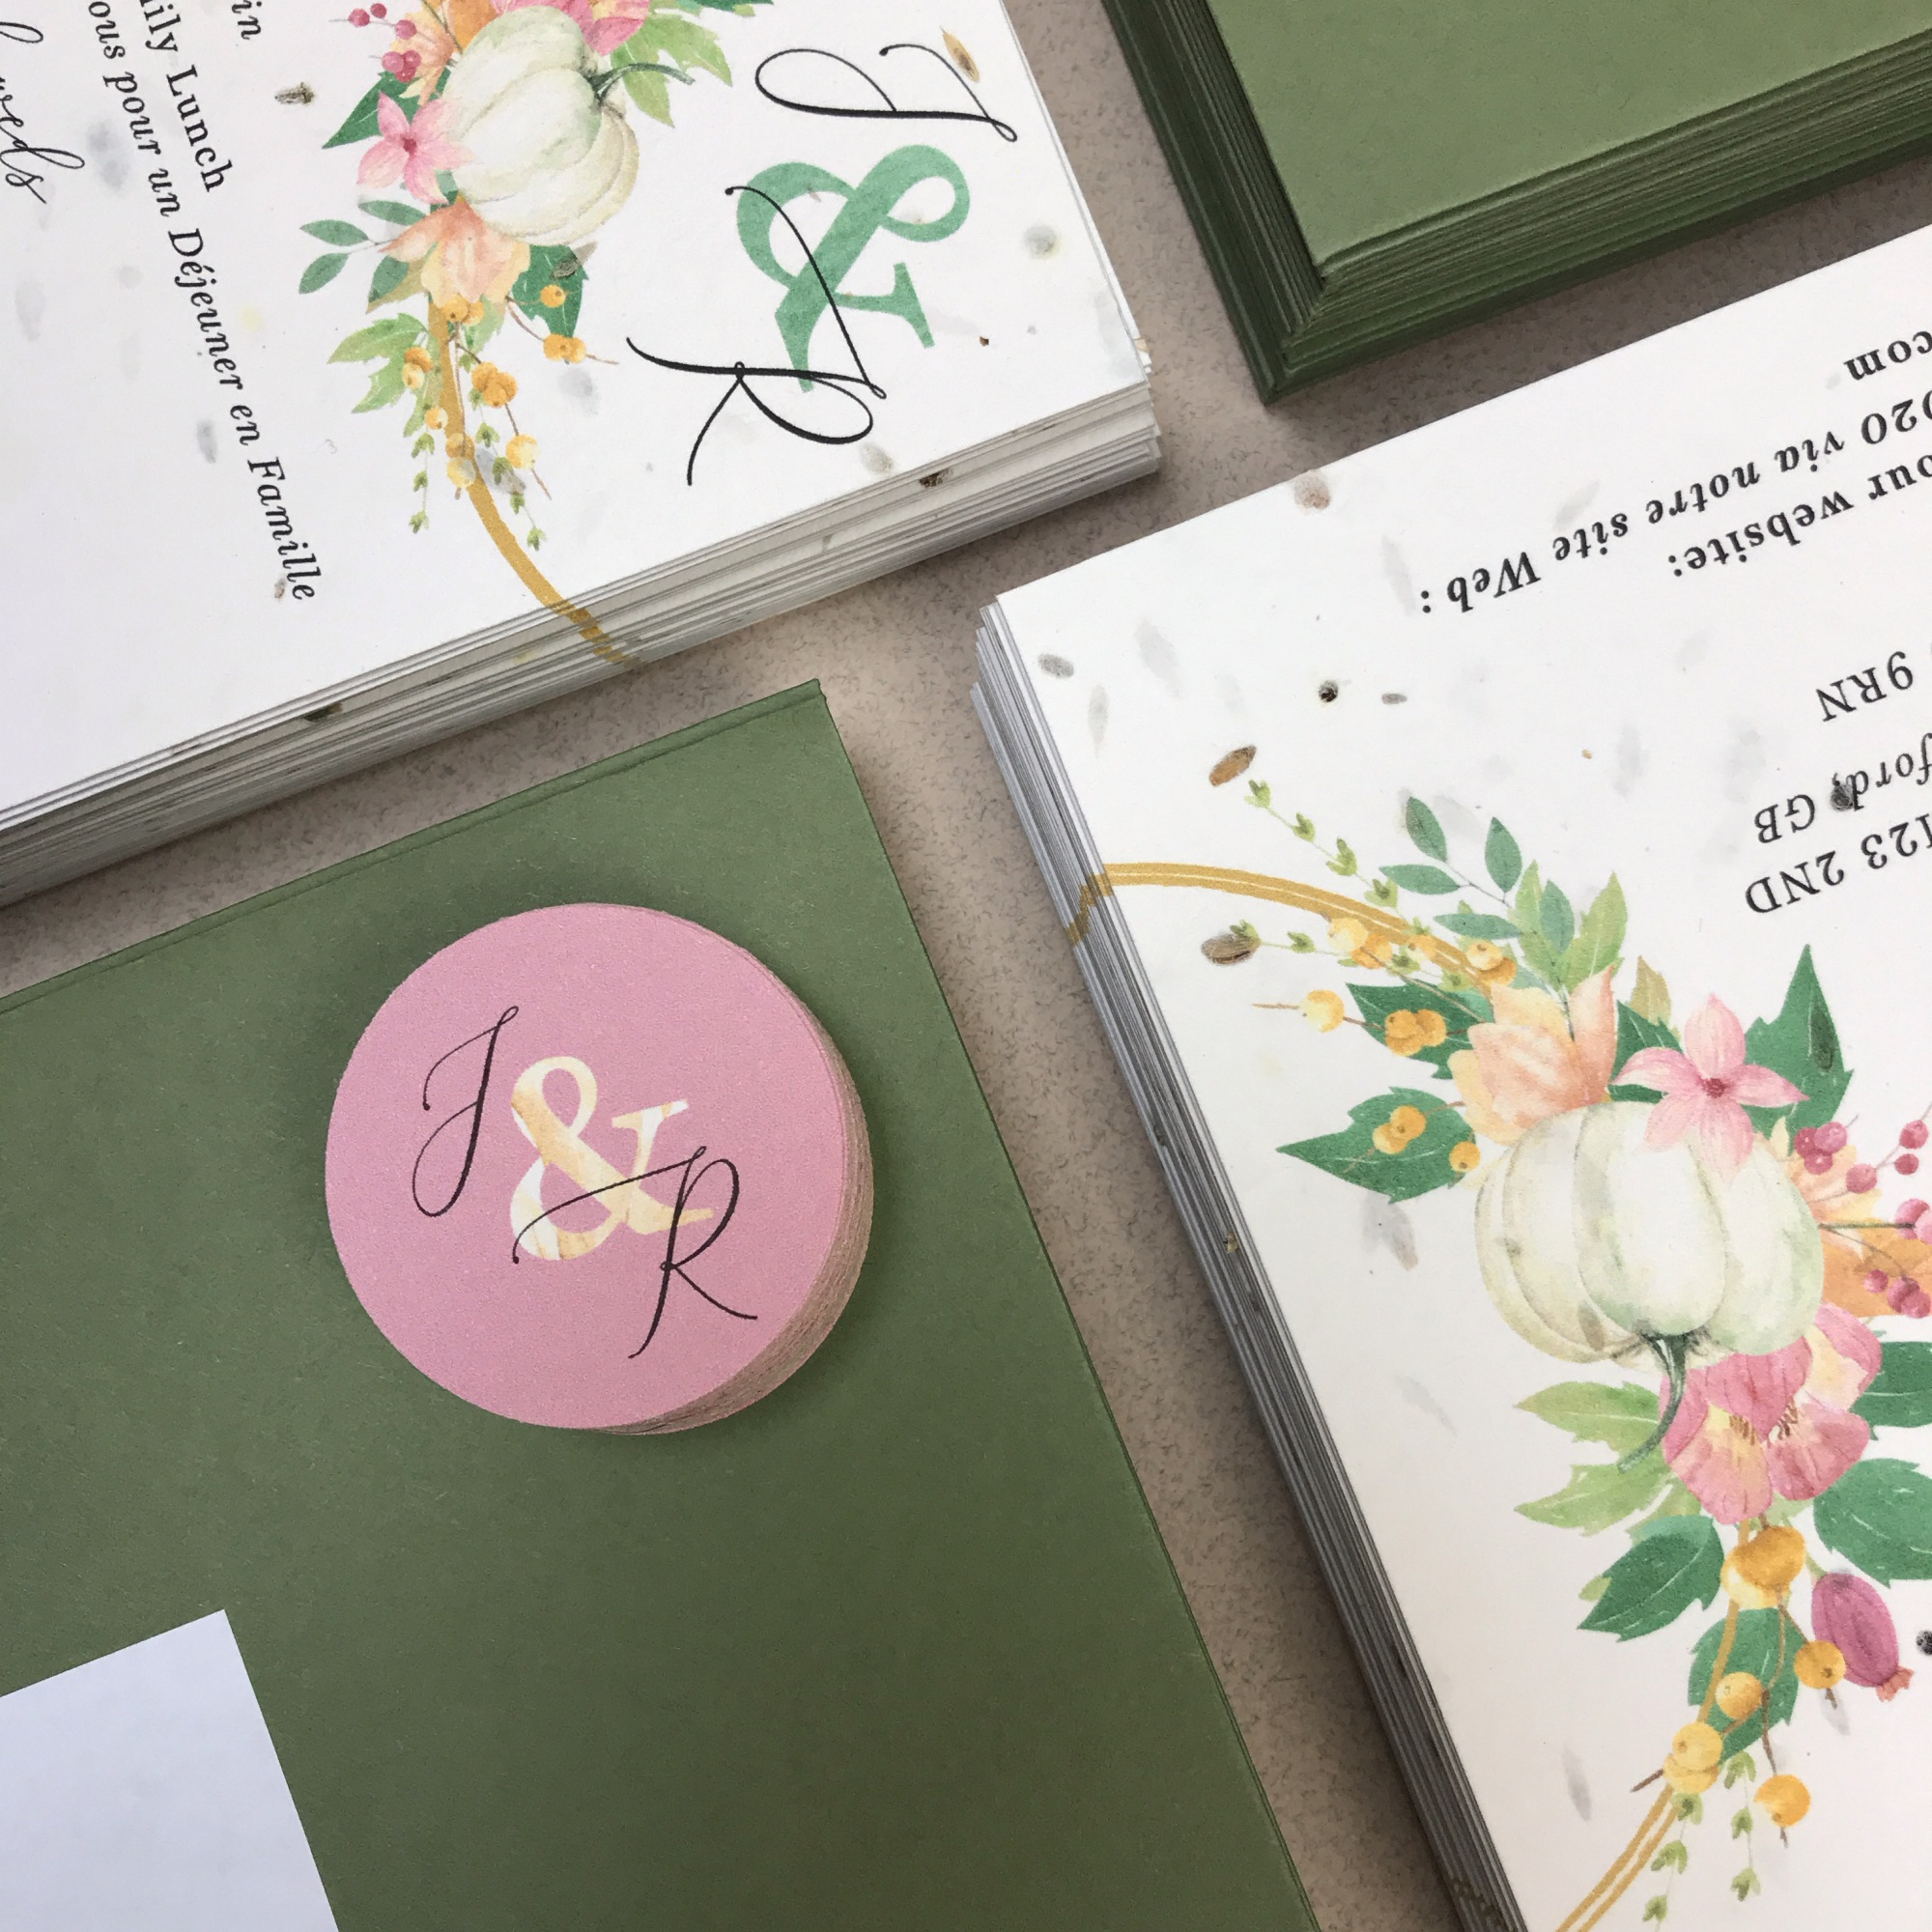 pumpkin, autumn, autumnal, hoop, fall, gold, seed paper, blush, boho, simple, foliage, green, pink, wedding, invitation, invites, invitations, eco, recycled, Cornwall, Cornish, stationery, Laura Likes